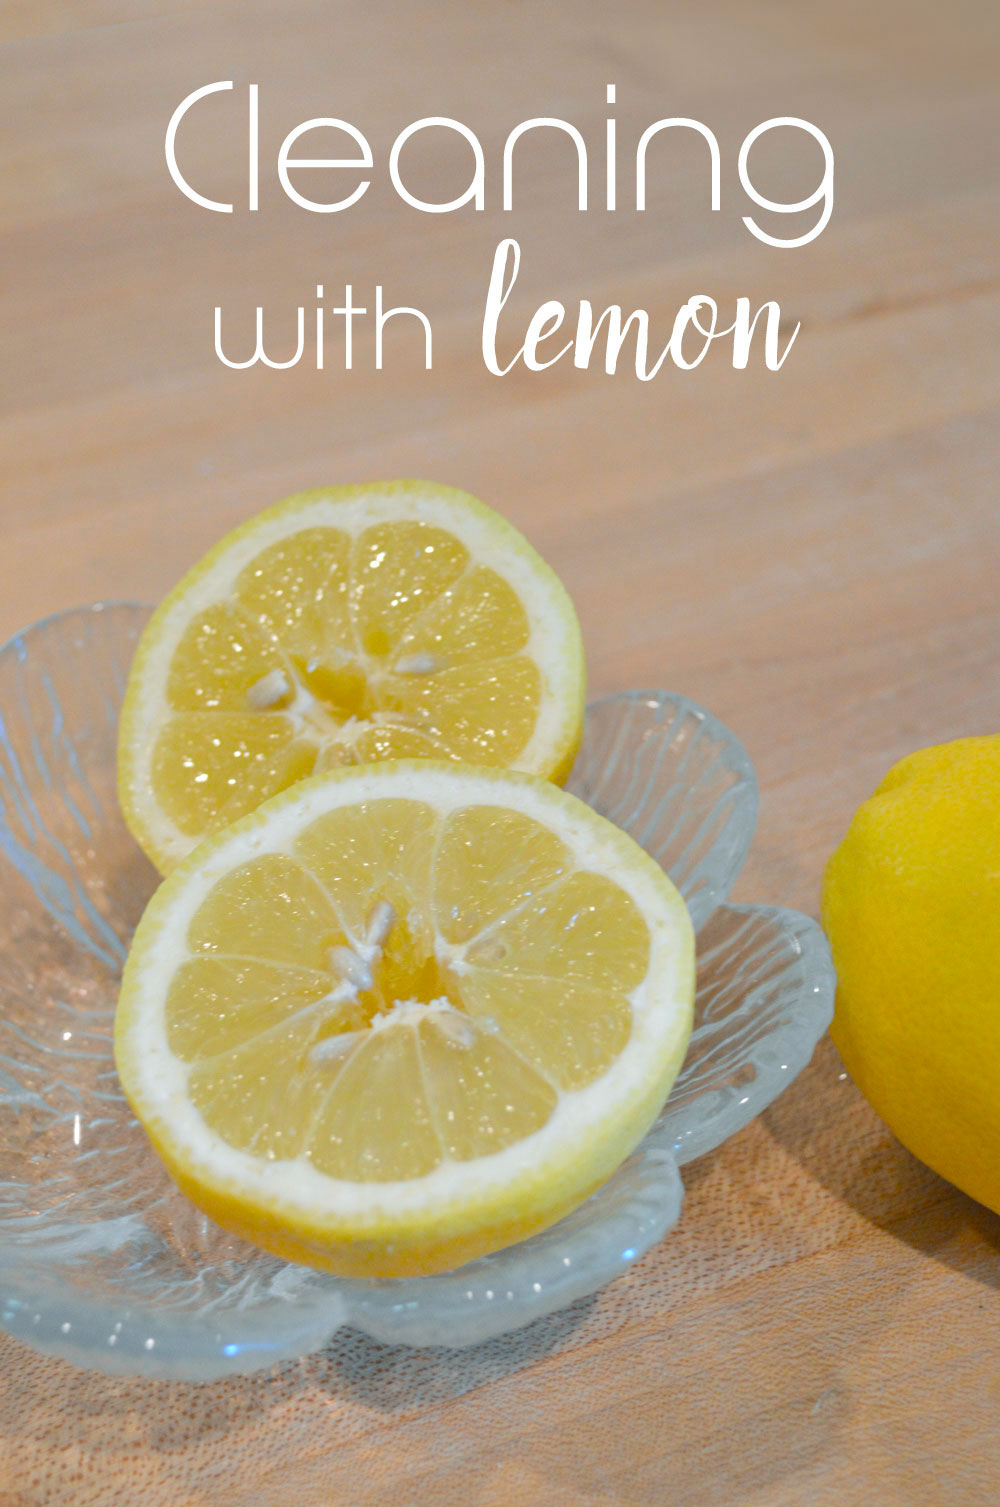 Cleaning with lemon natural kitchen degreasing tips - Mommy Scene